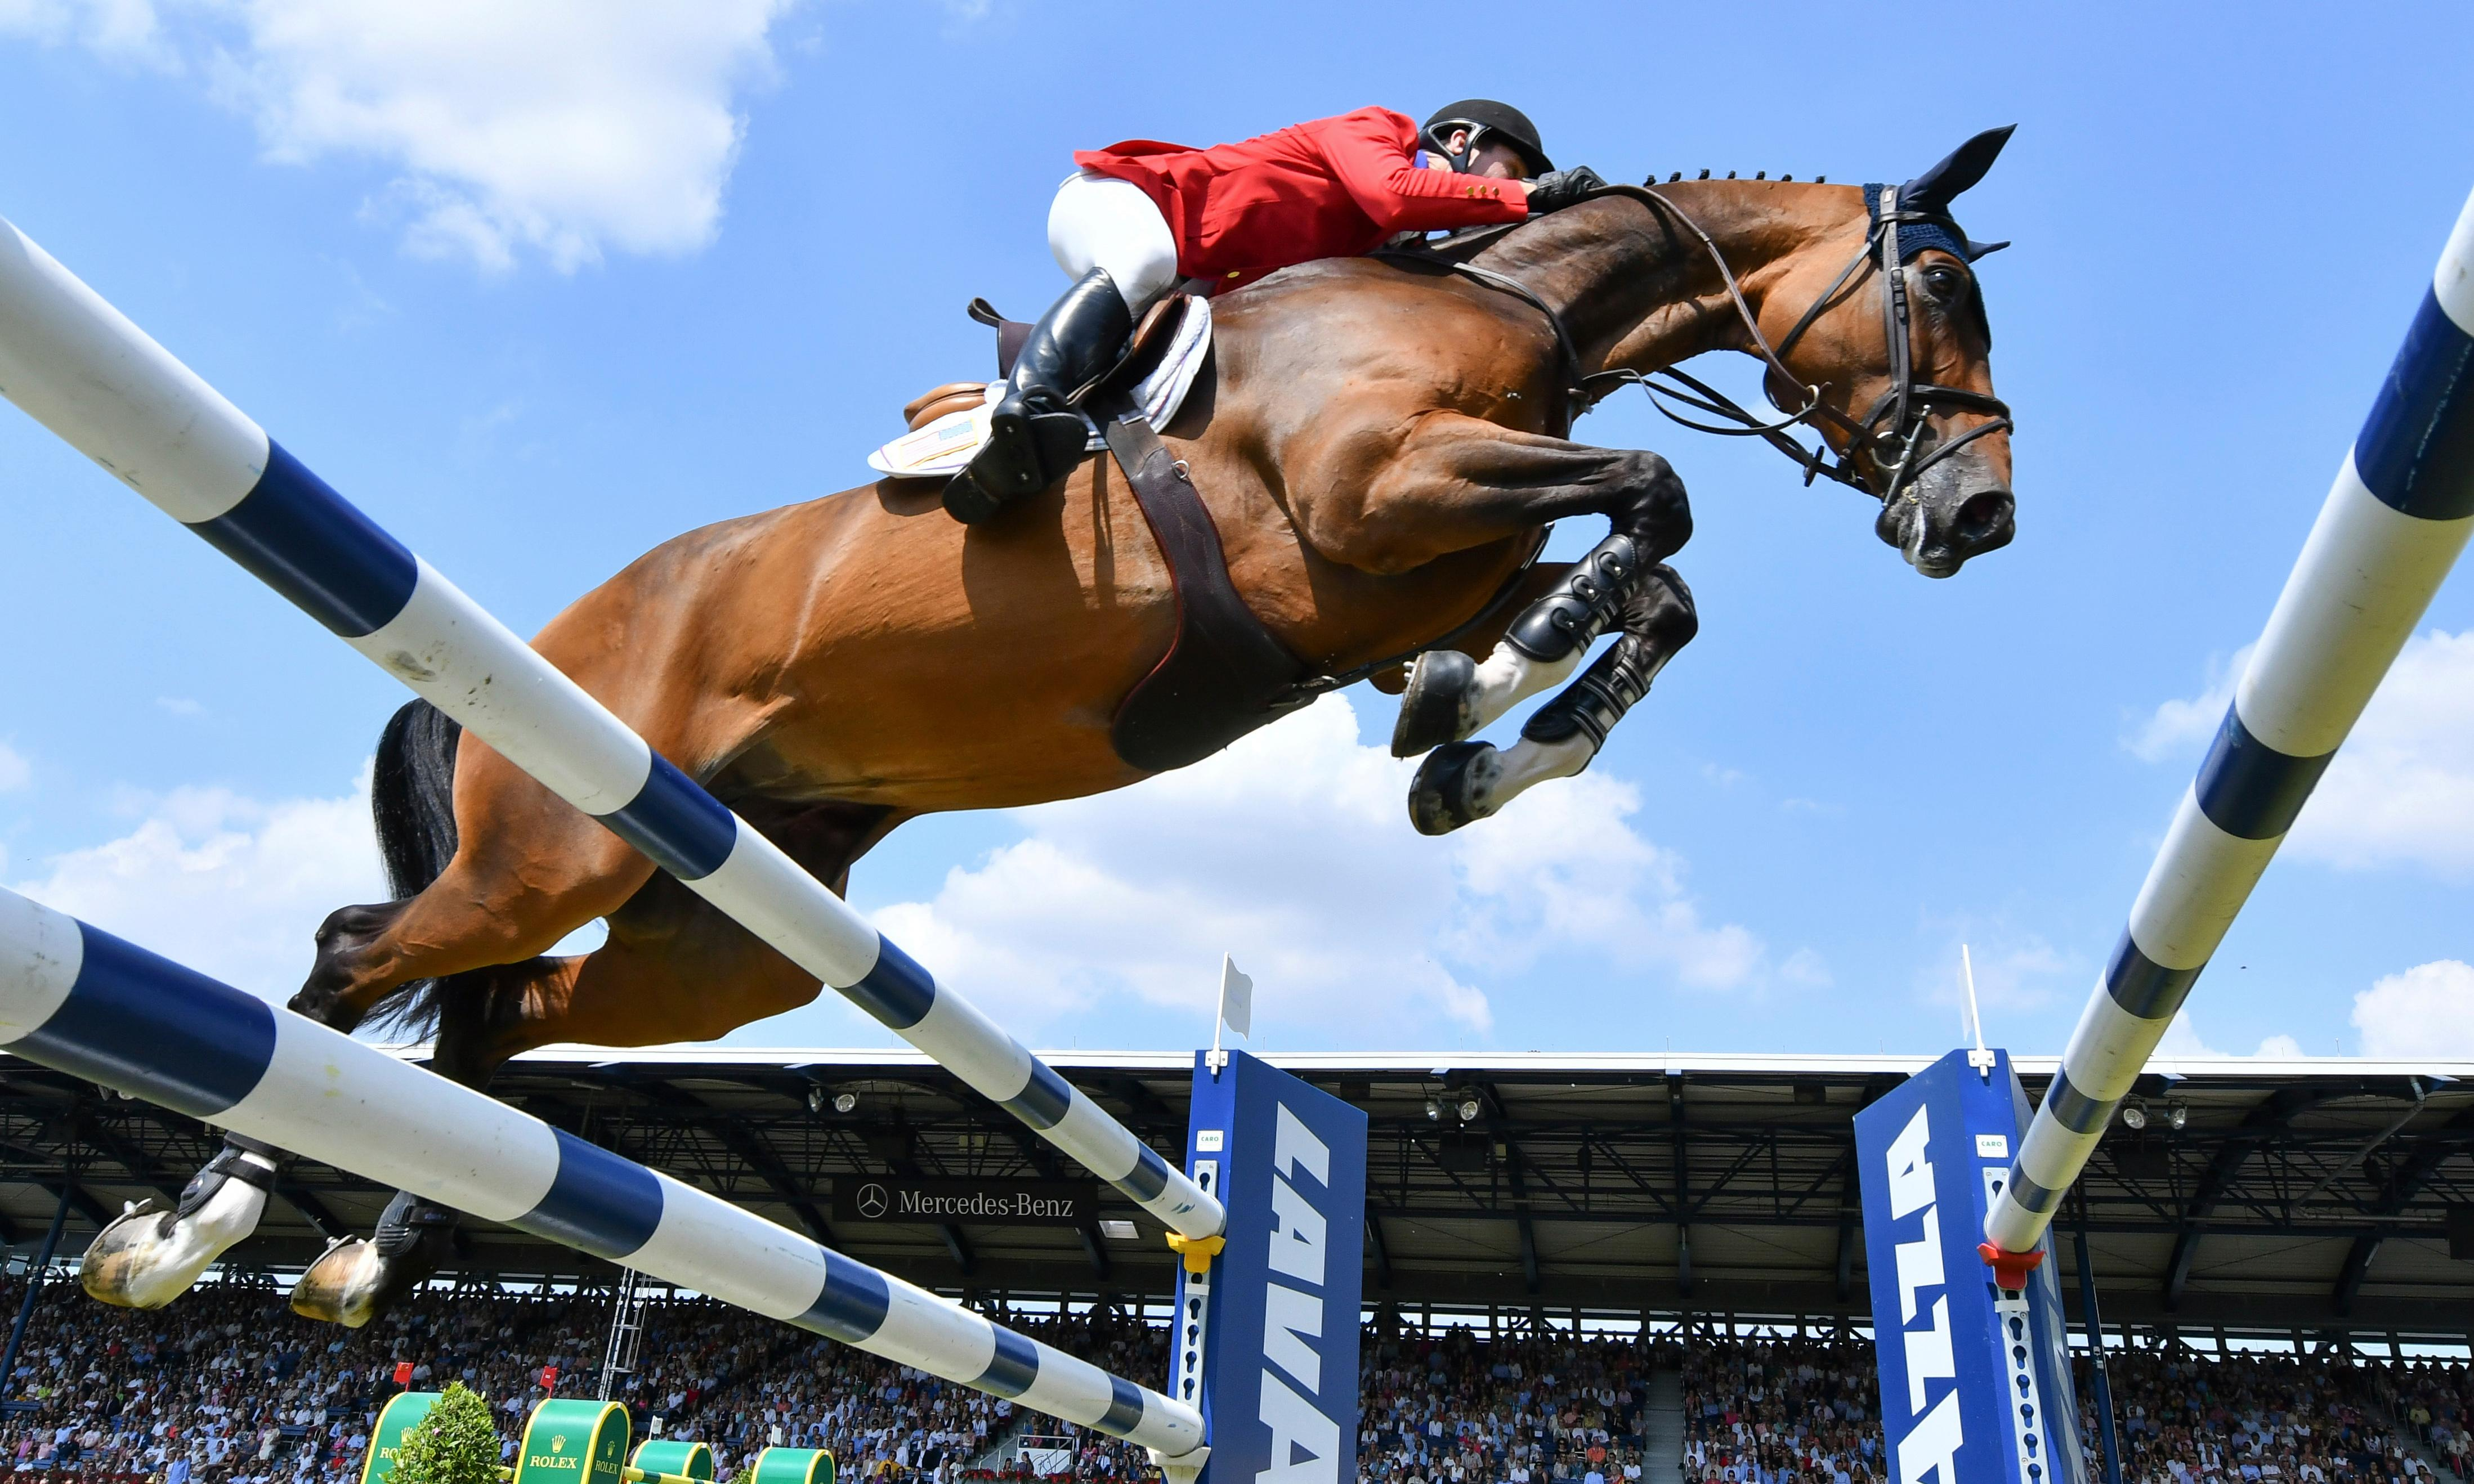 George Morris, US Olympic equestrian medalist and coach, given lifetime ban